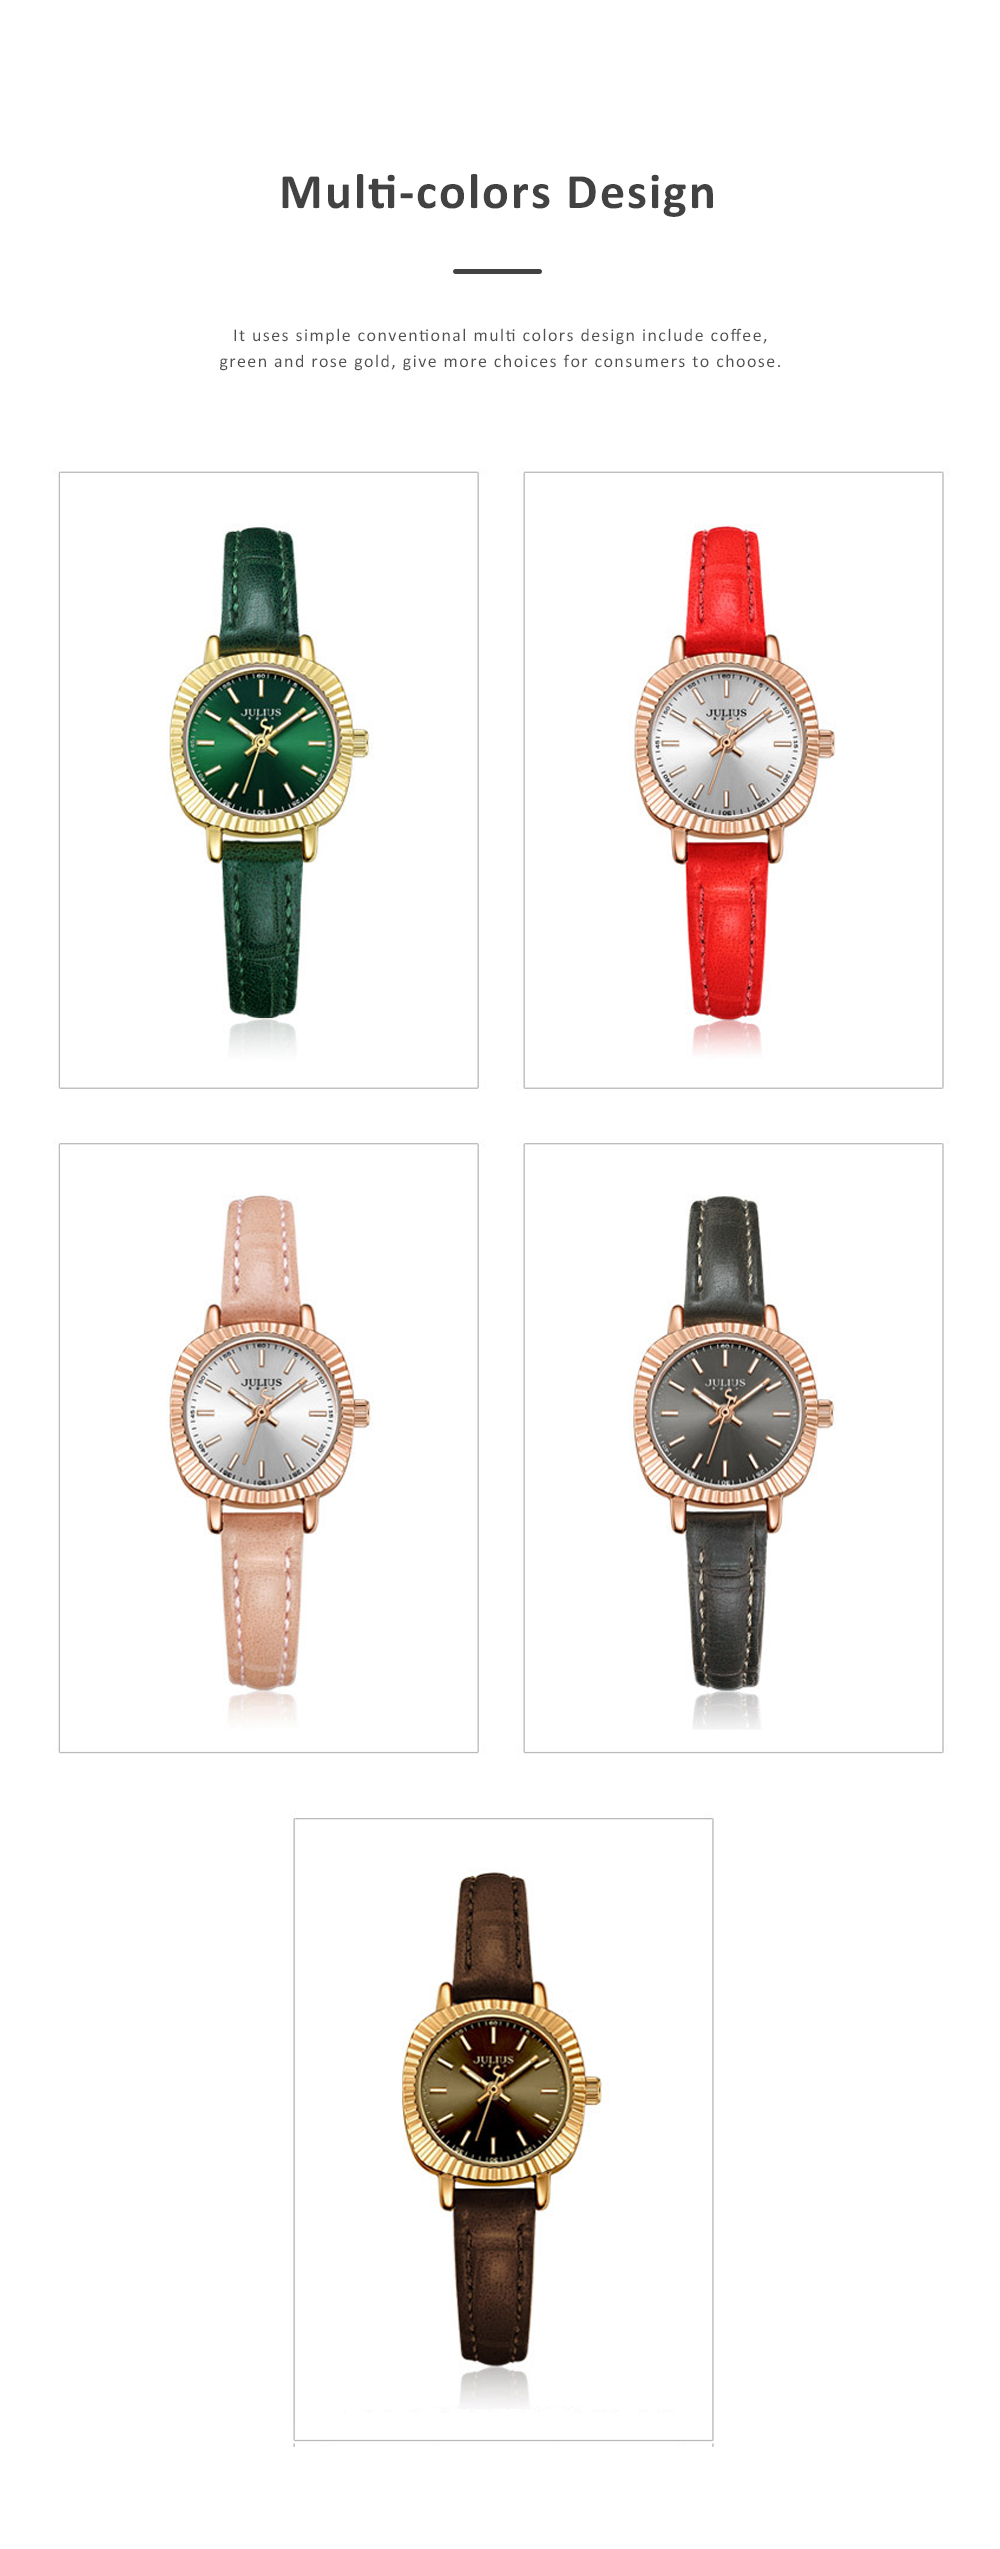 Glitter Dial Watch for Women Waterproof Bottom Cover Ultrafine Leather Strap Quartz watch 5